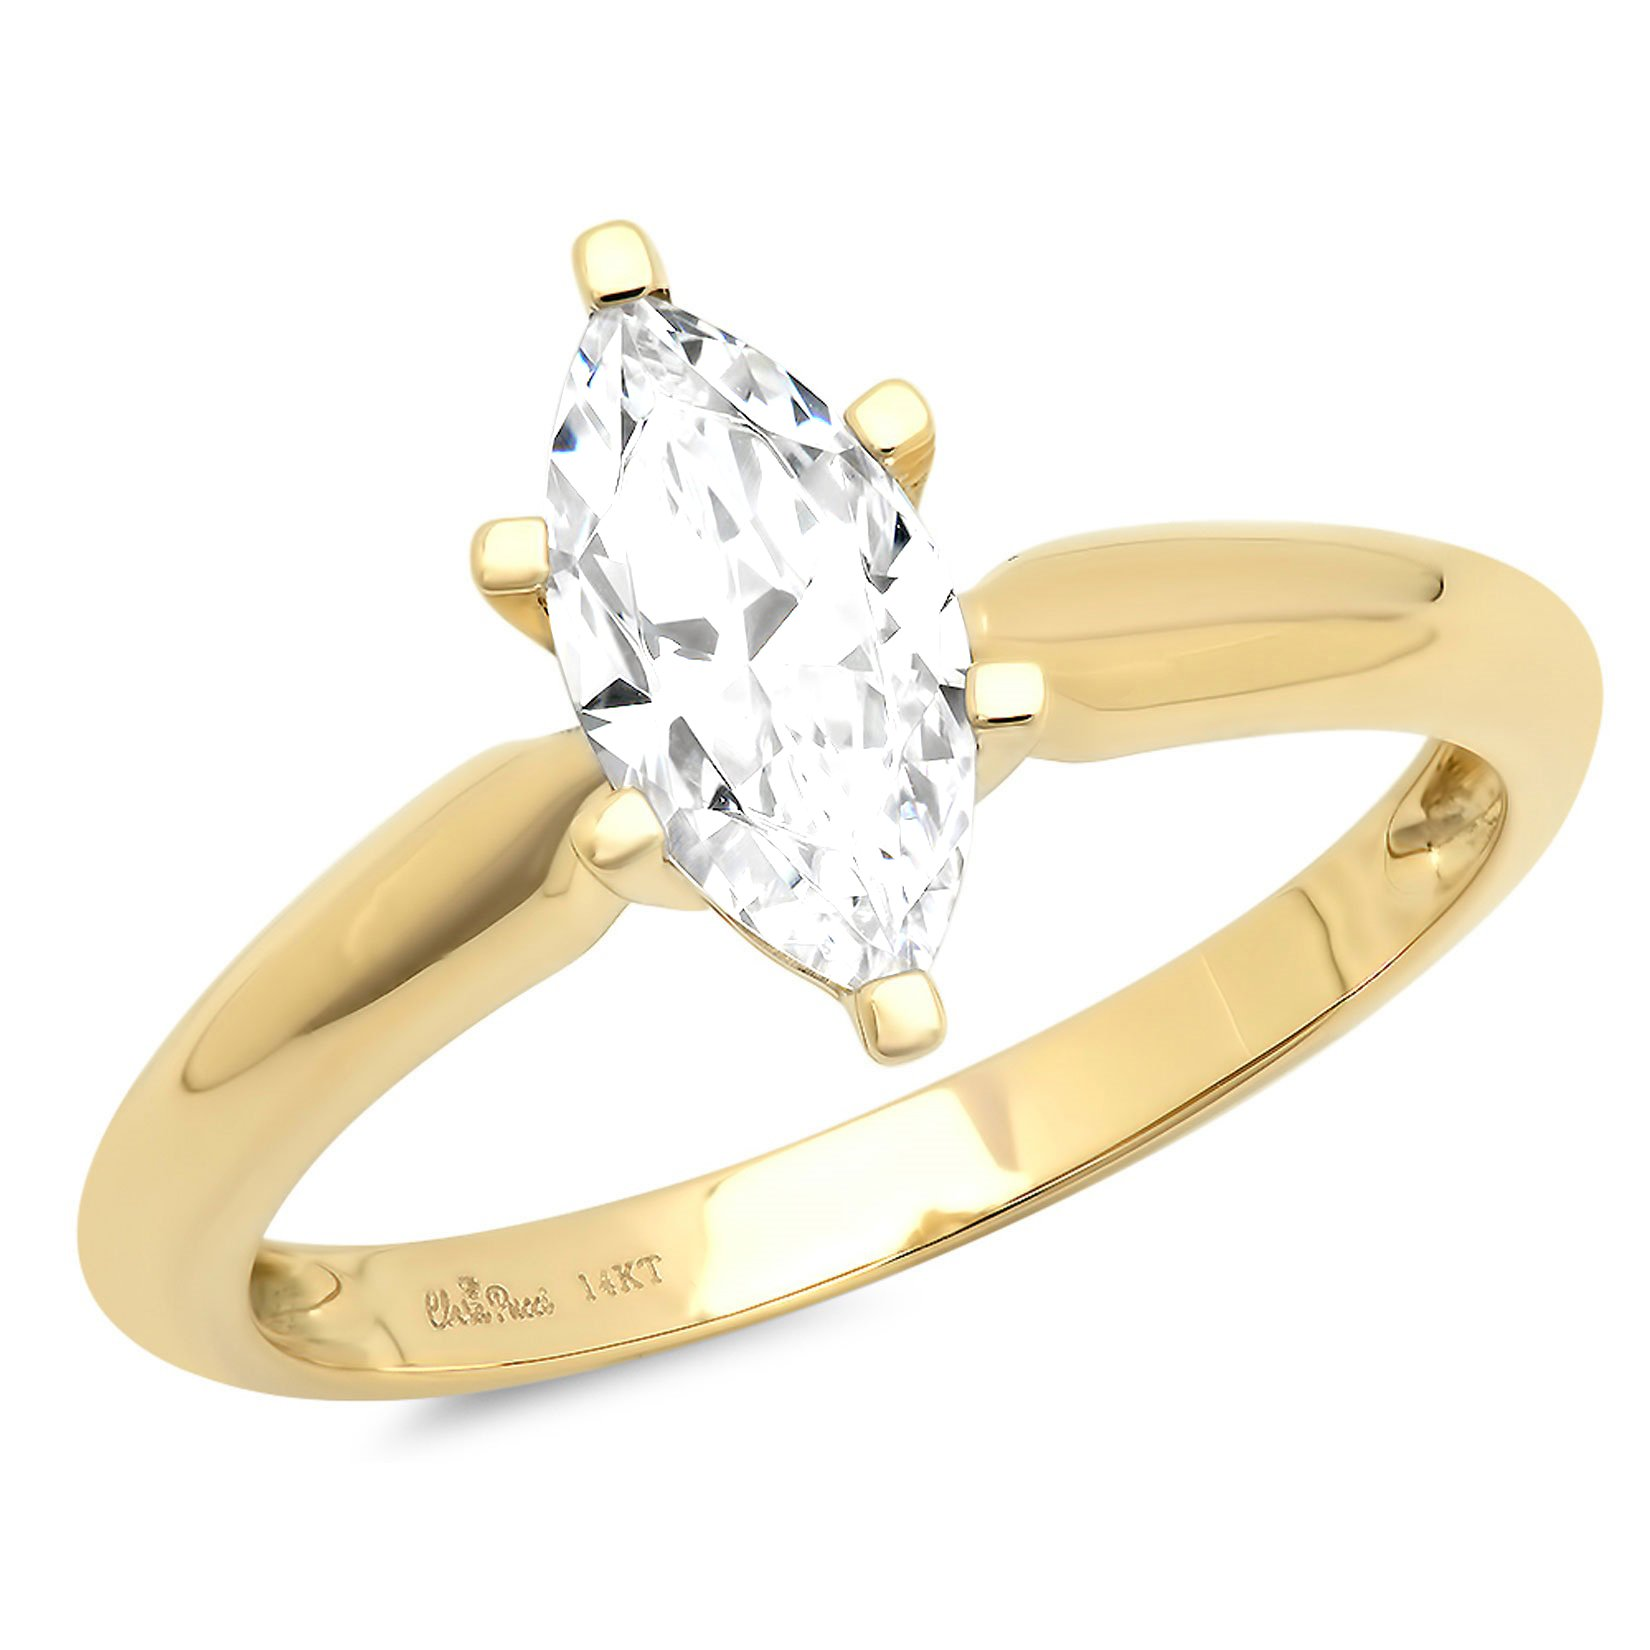 Clara Pucci 1.6ct Marquise Brilliant Cut Simulated Diamond Classic Solitaire Designer Statement Ring Solid 14k Yellow Gold for Women, 10